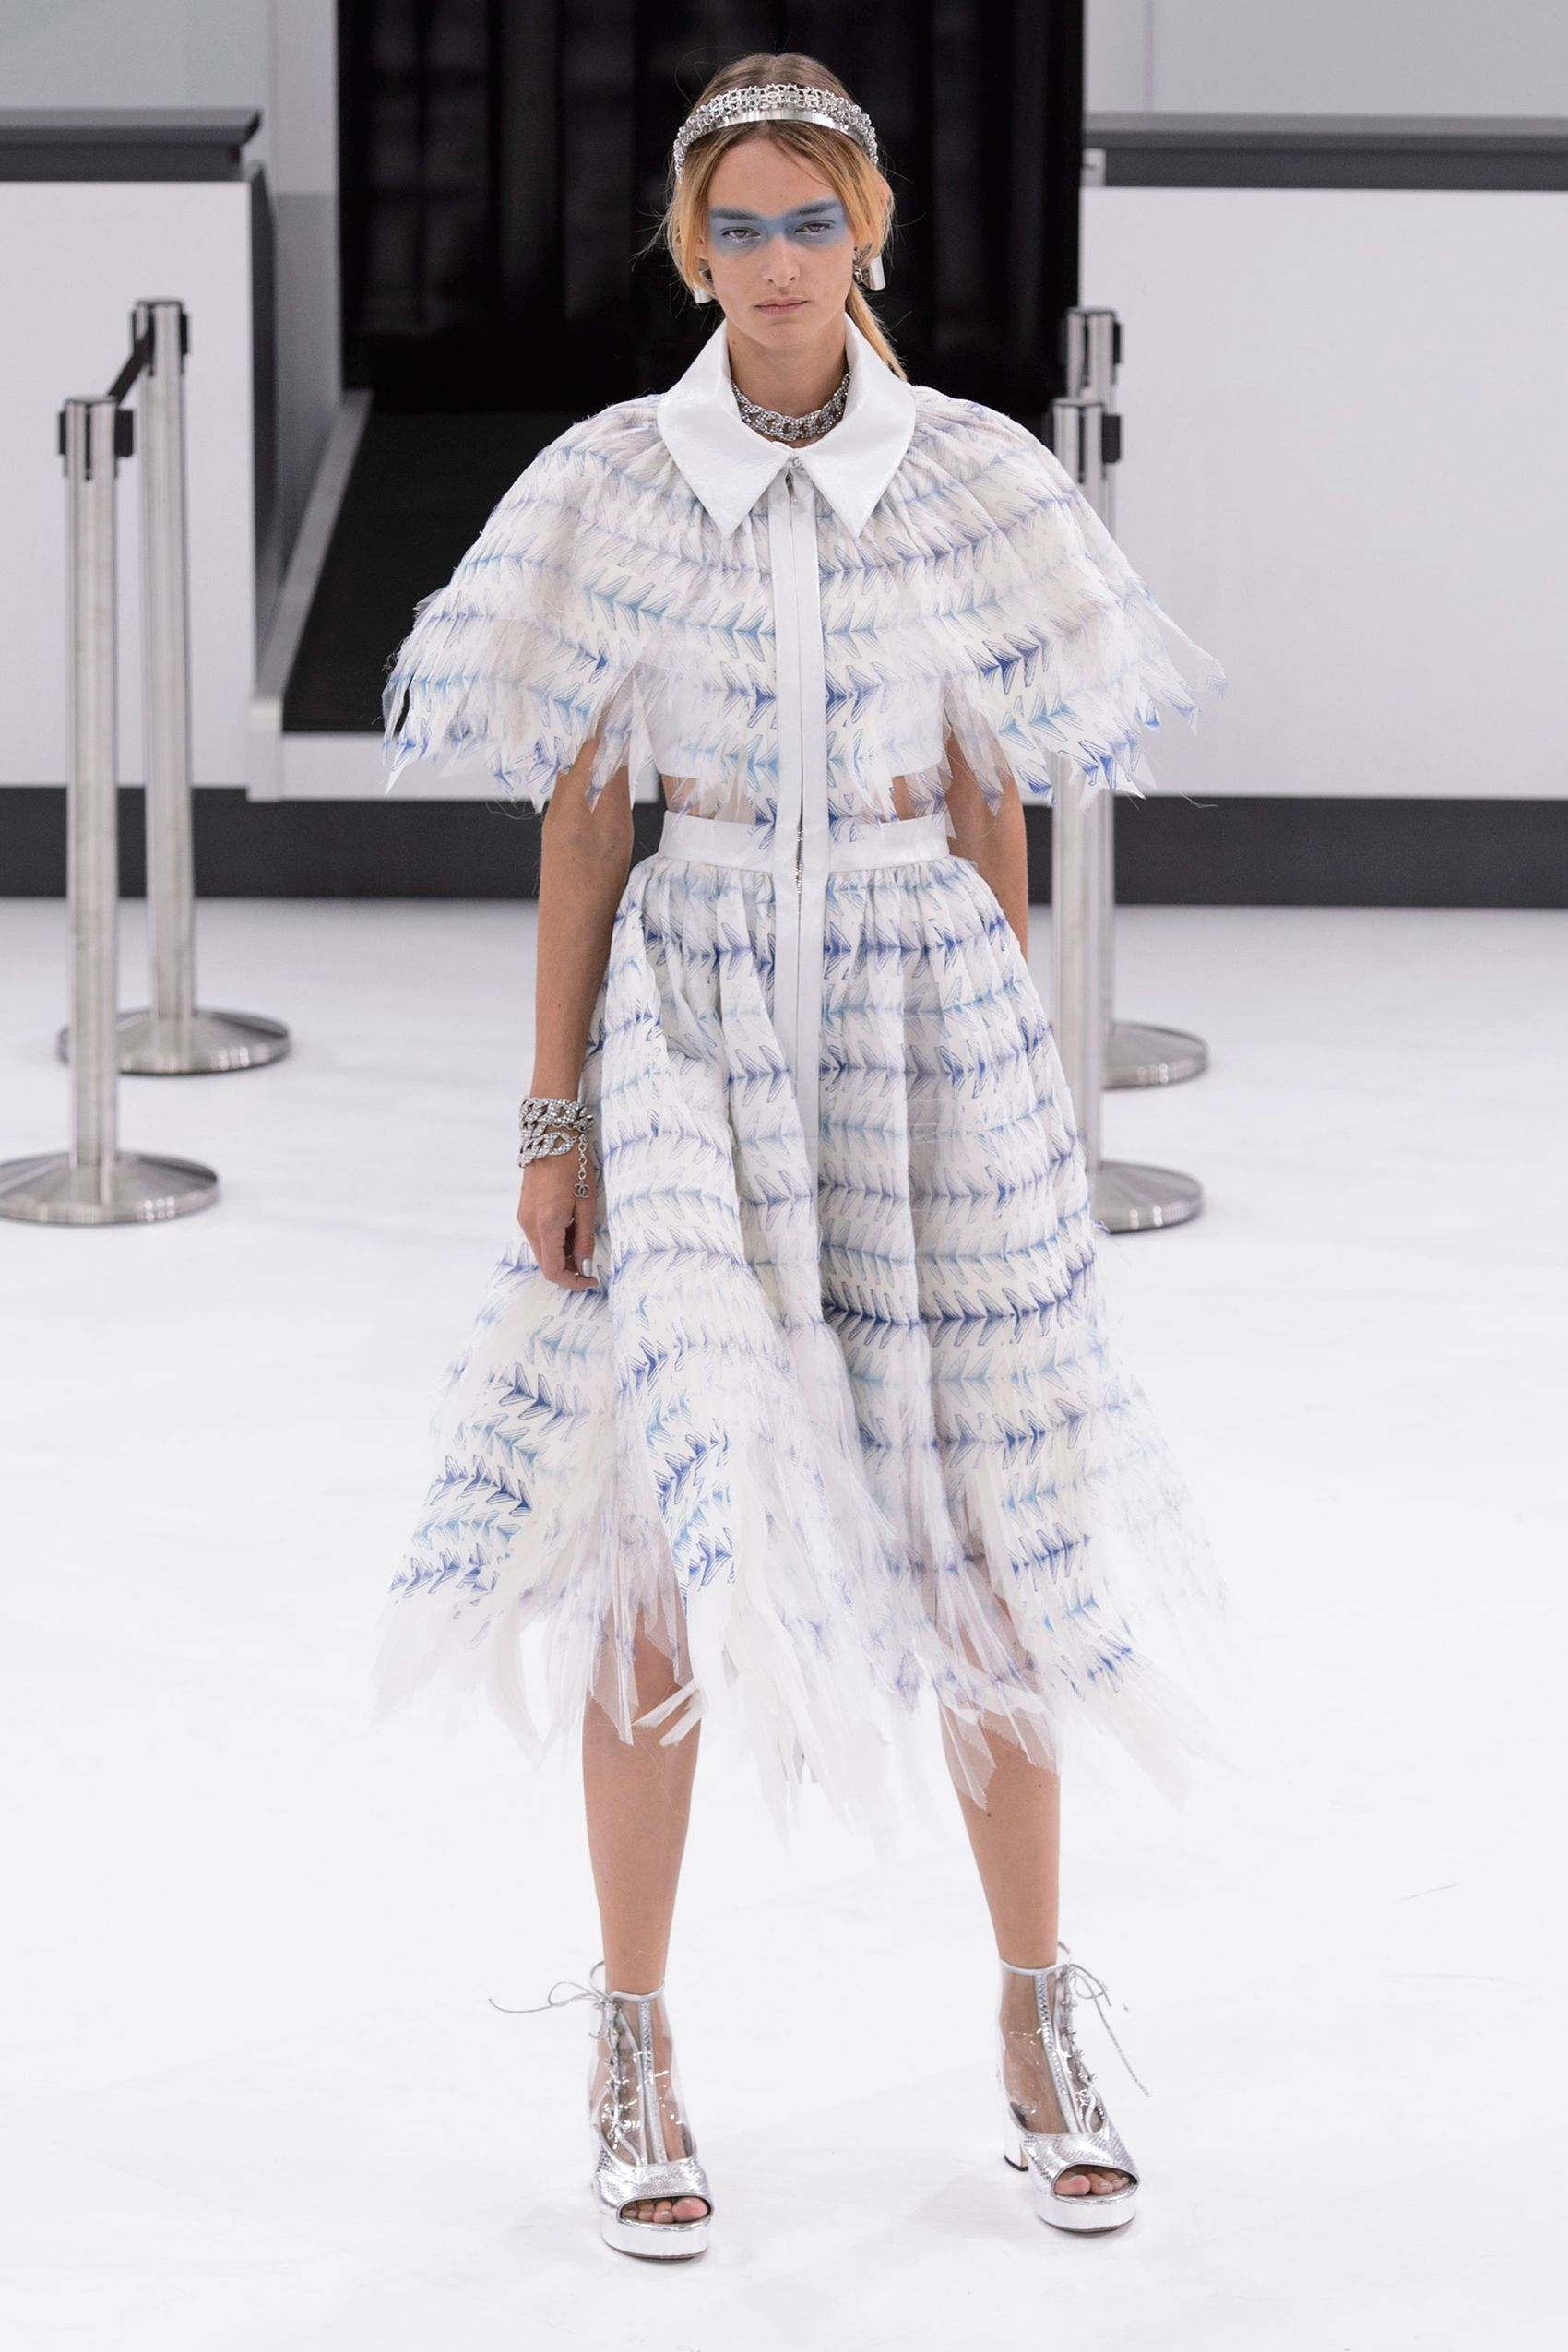 7b7a65e3f8 Best Runway Fashion at Paris Fashion Week Spring 2016 - Paris Fashion Week Spring  2016 Runway Trends